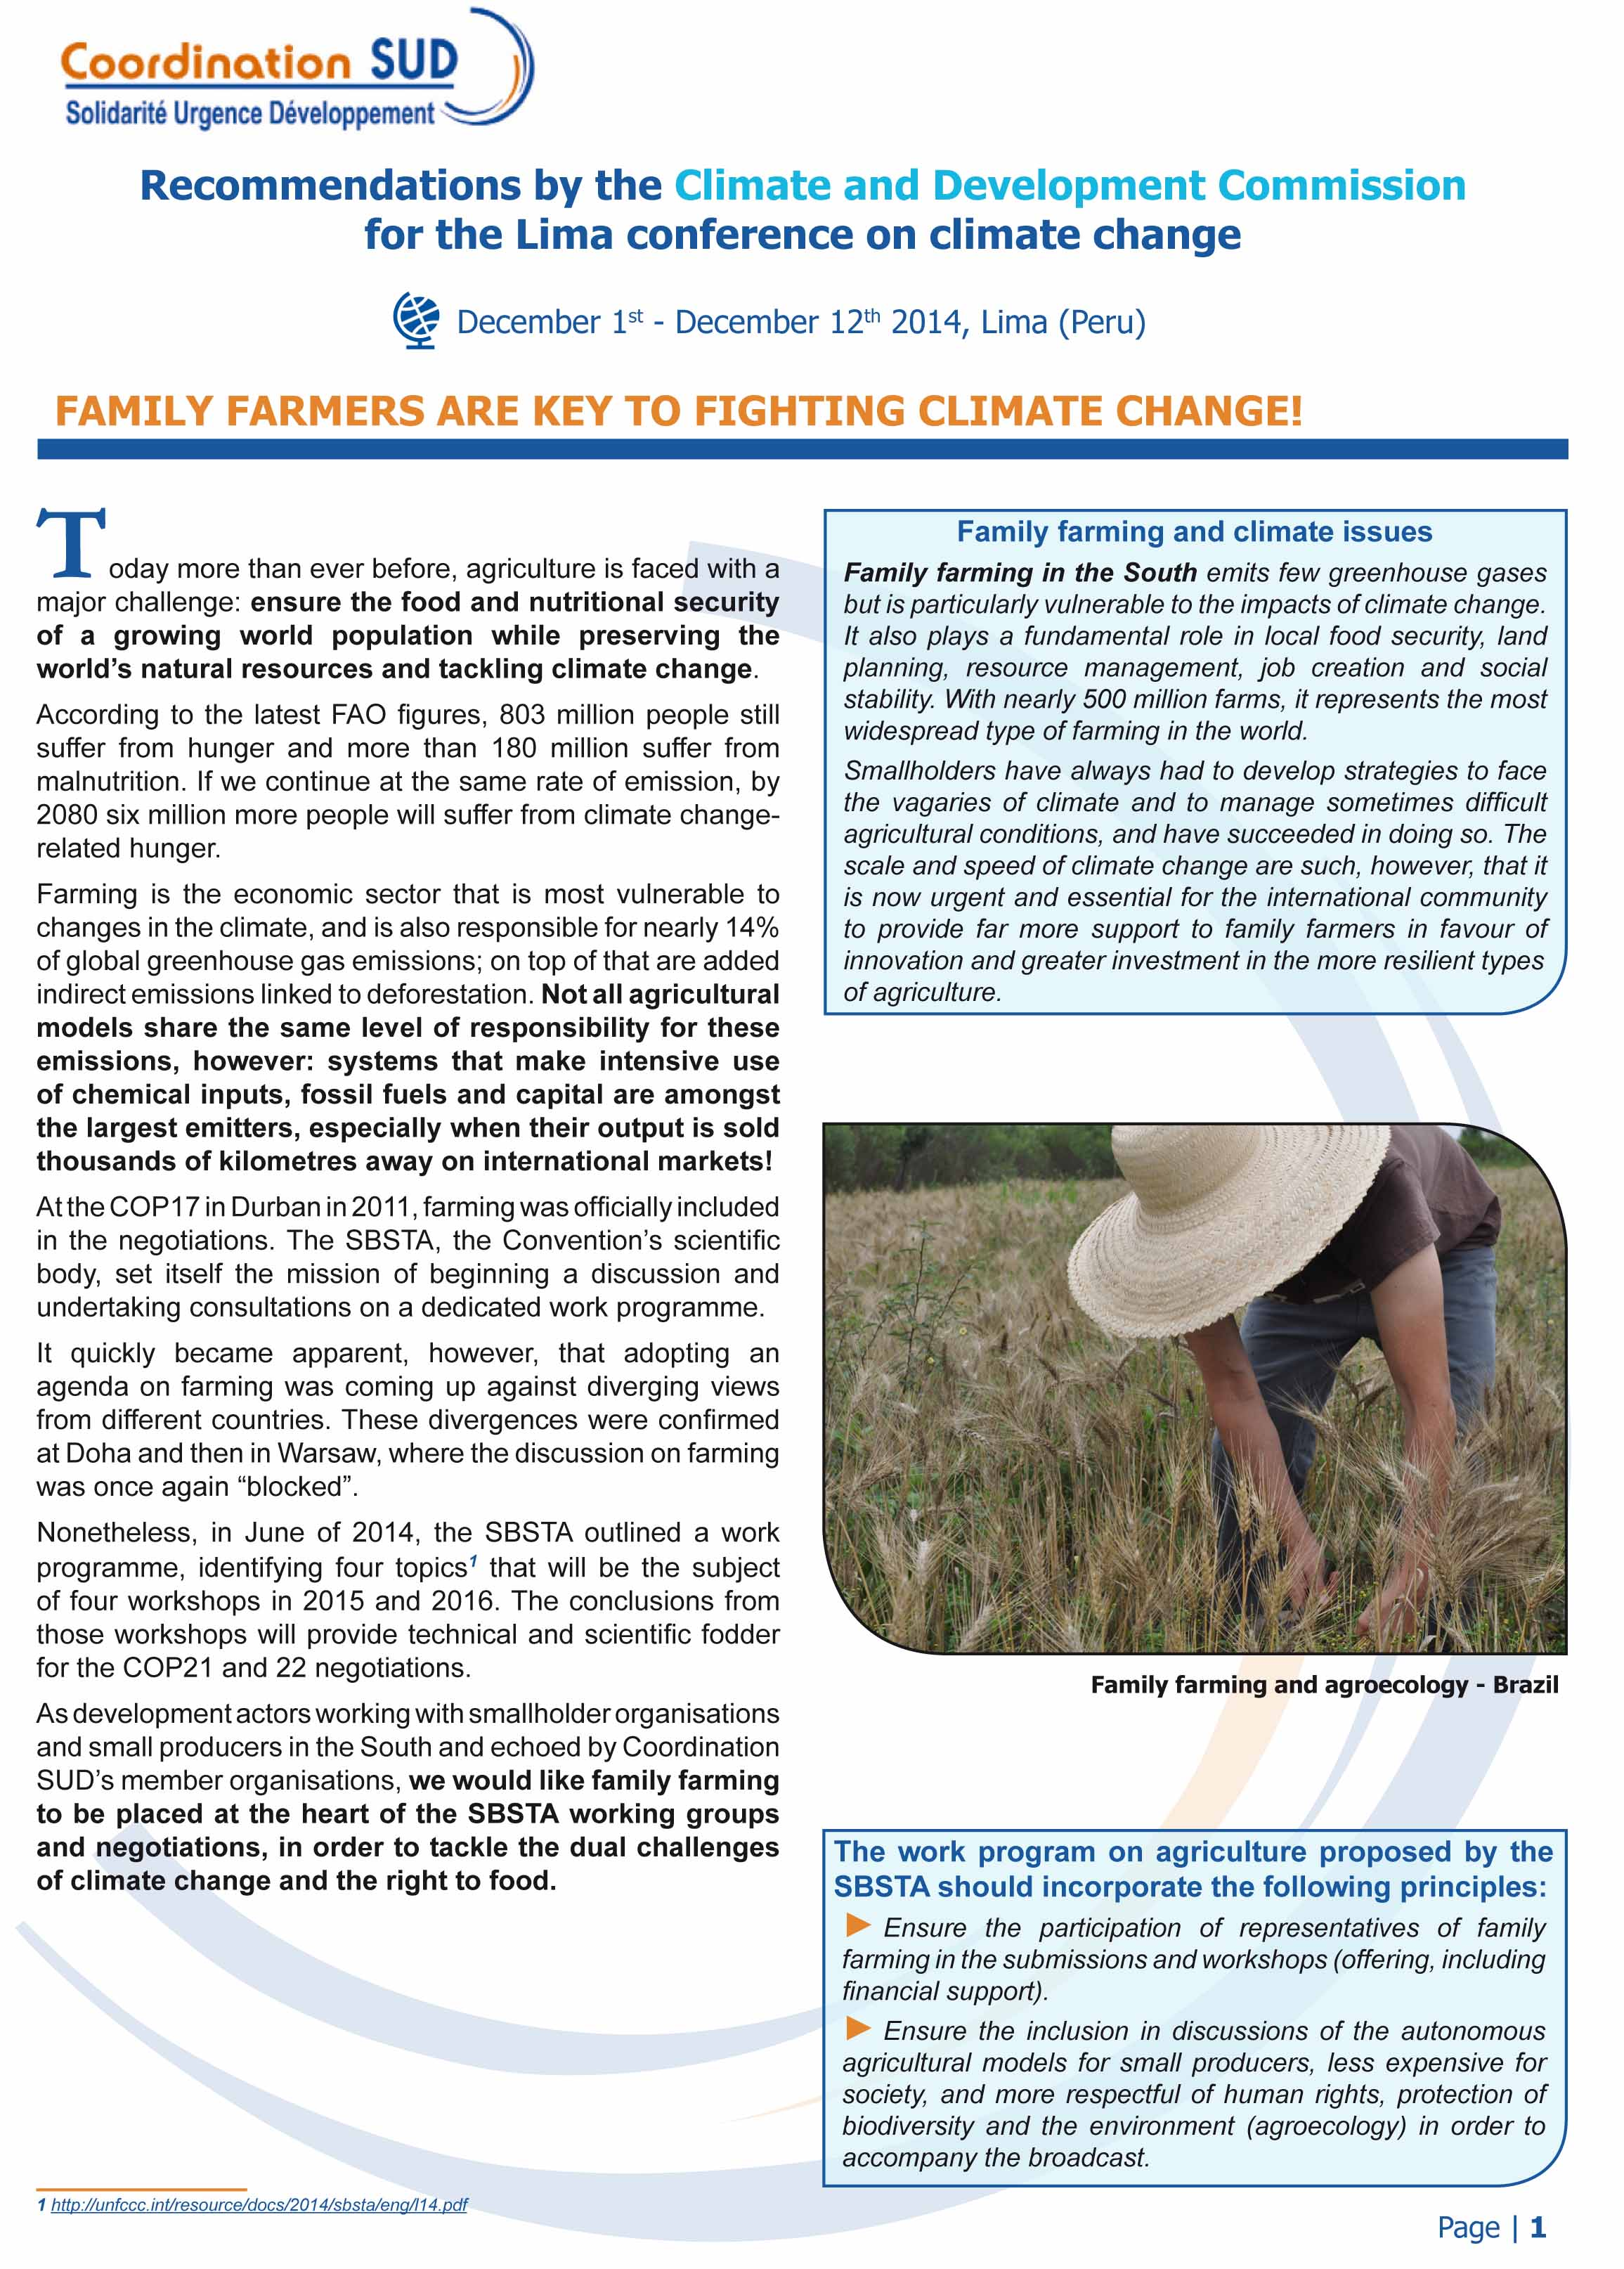 Family Farmers are key to fighting climate change!  Image principale